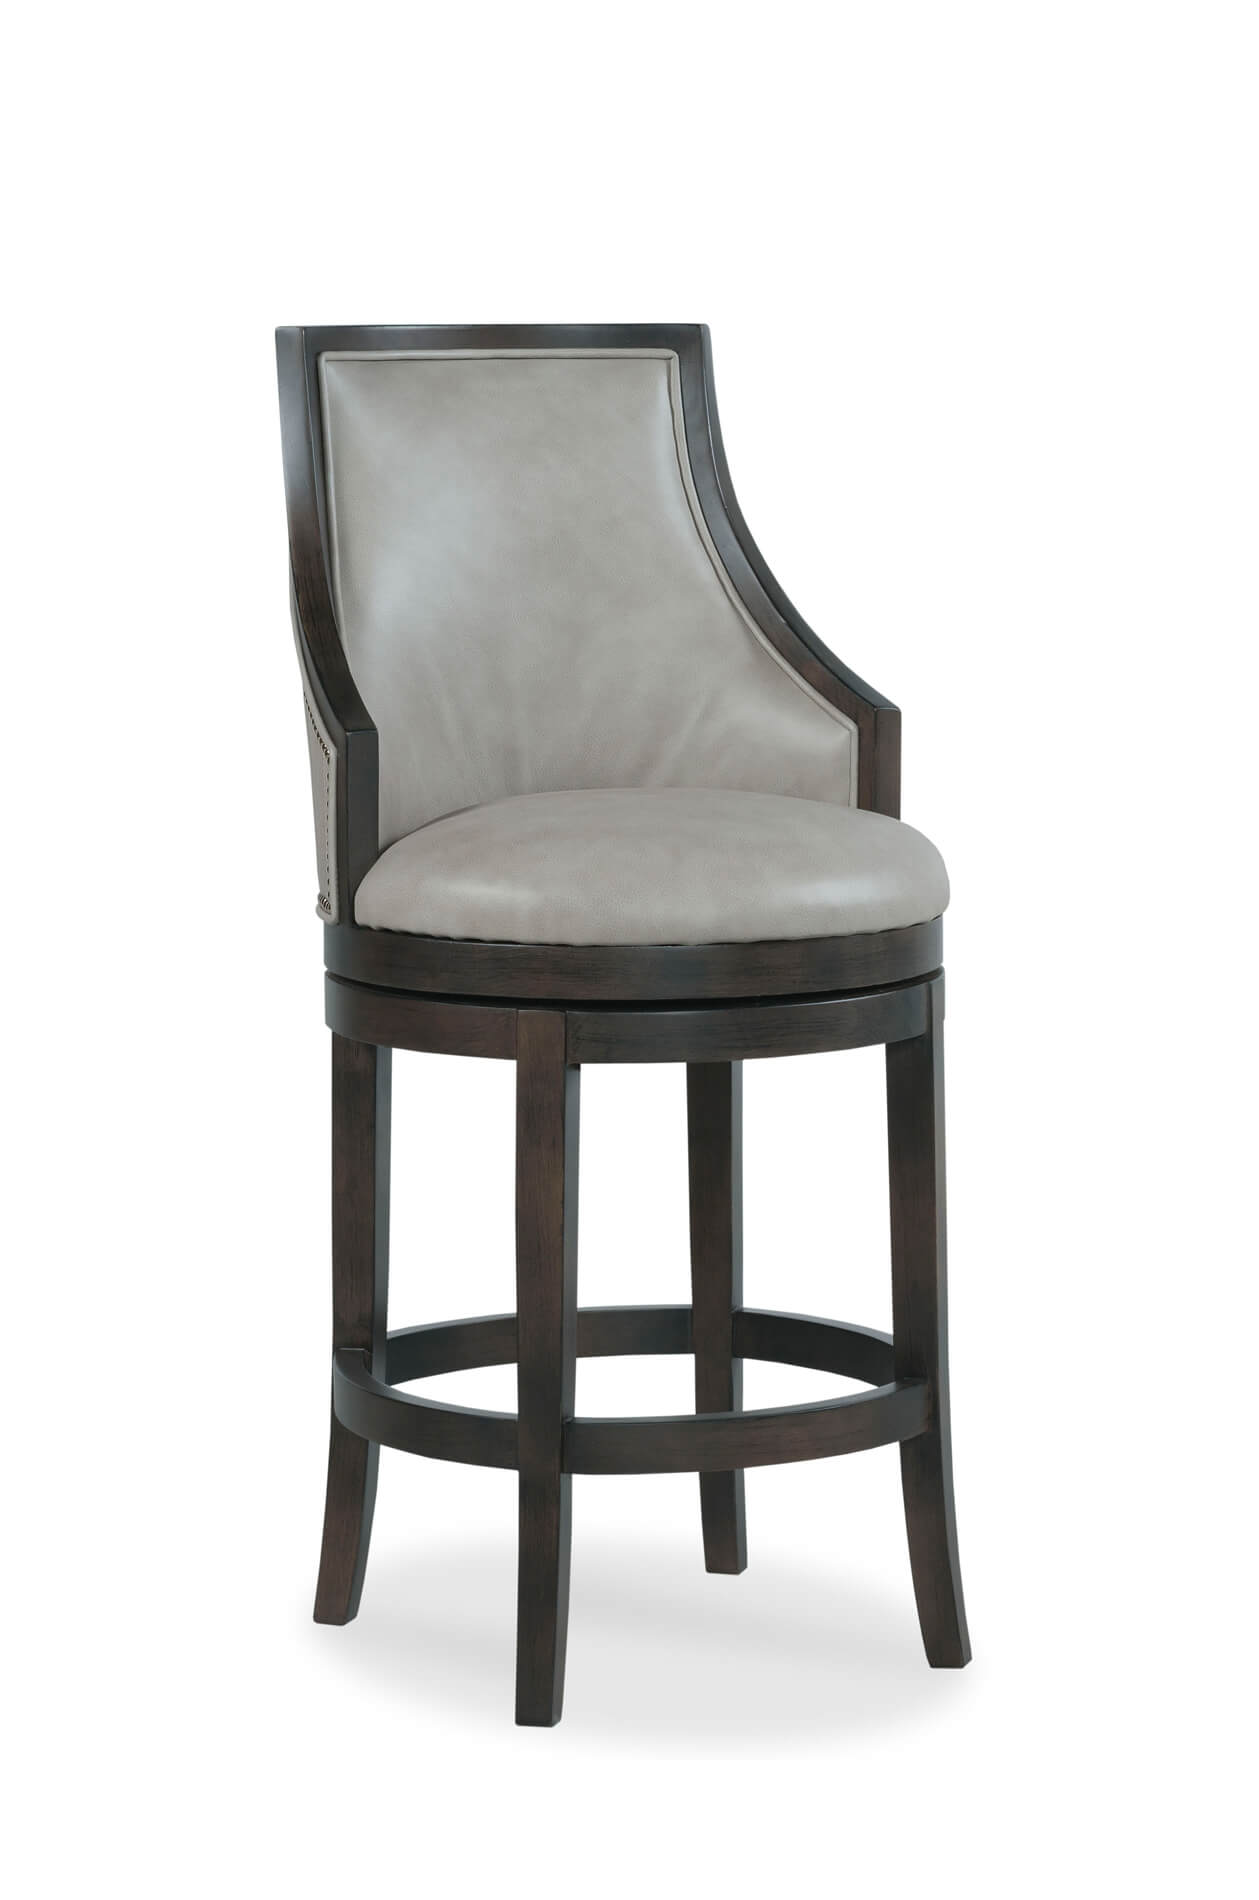 Buy Robroy Upholstered Formal Wood Swivel Barstool W